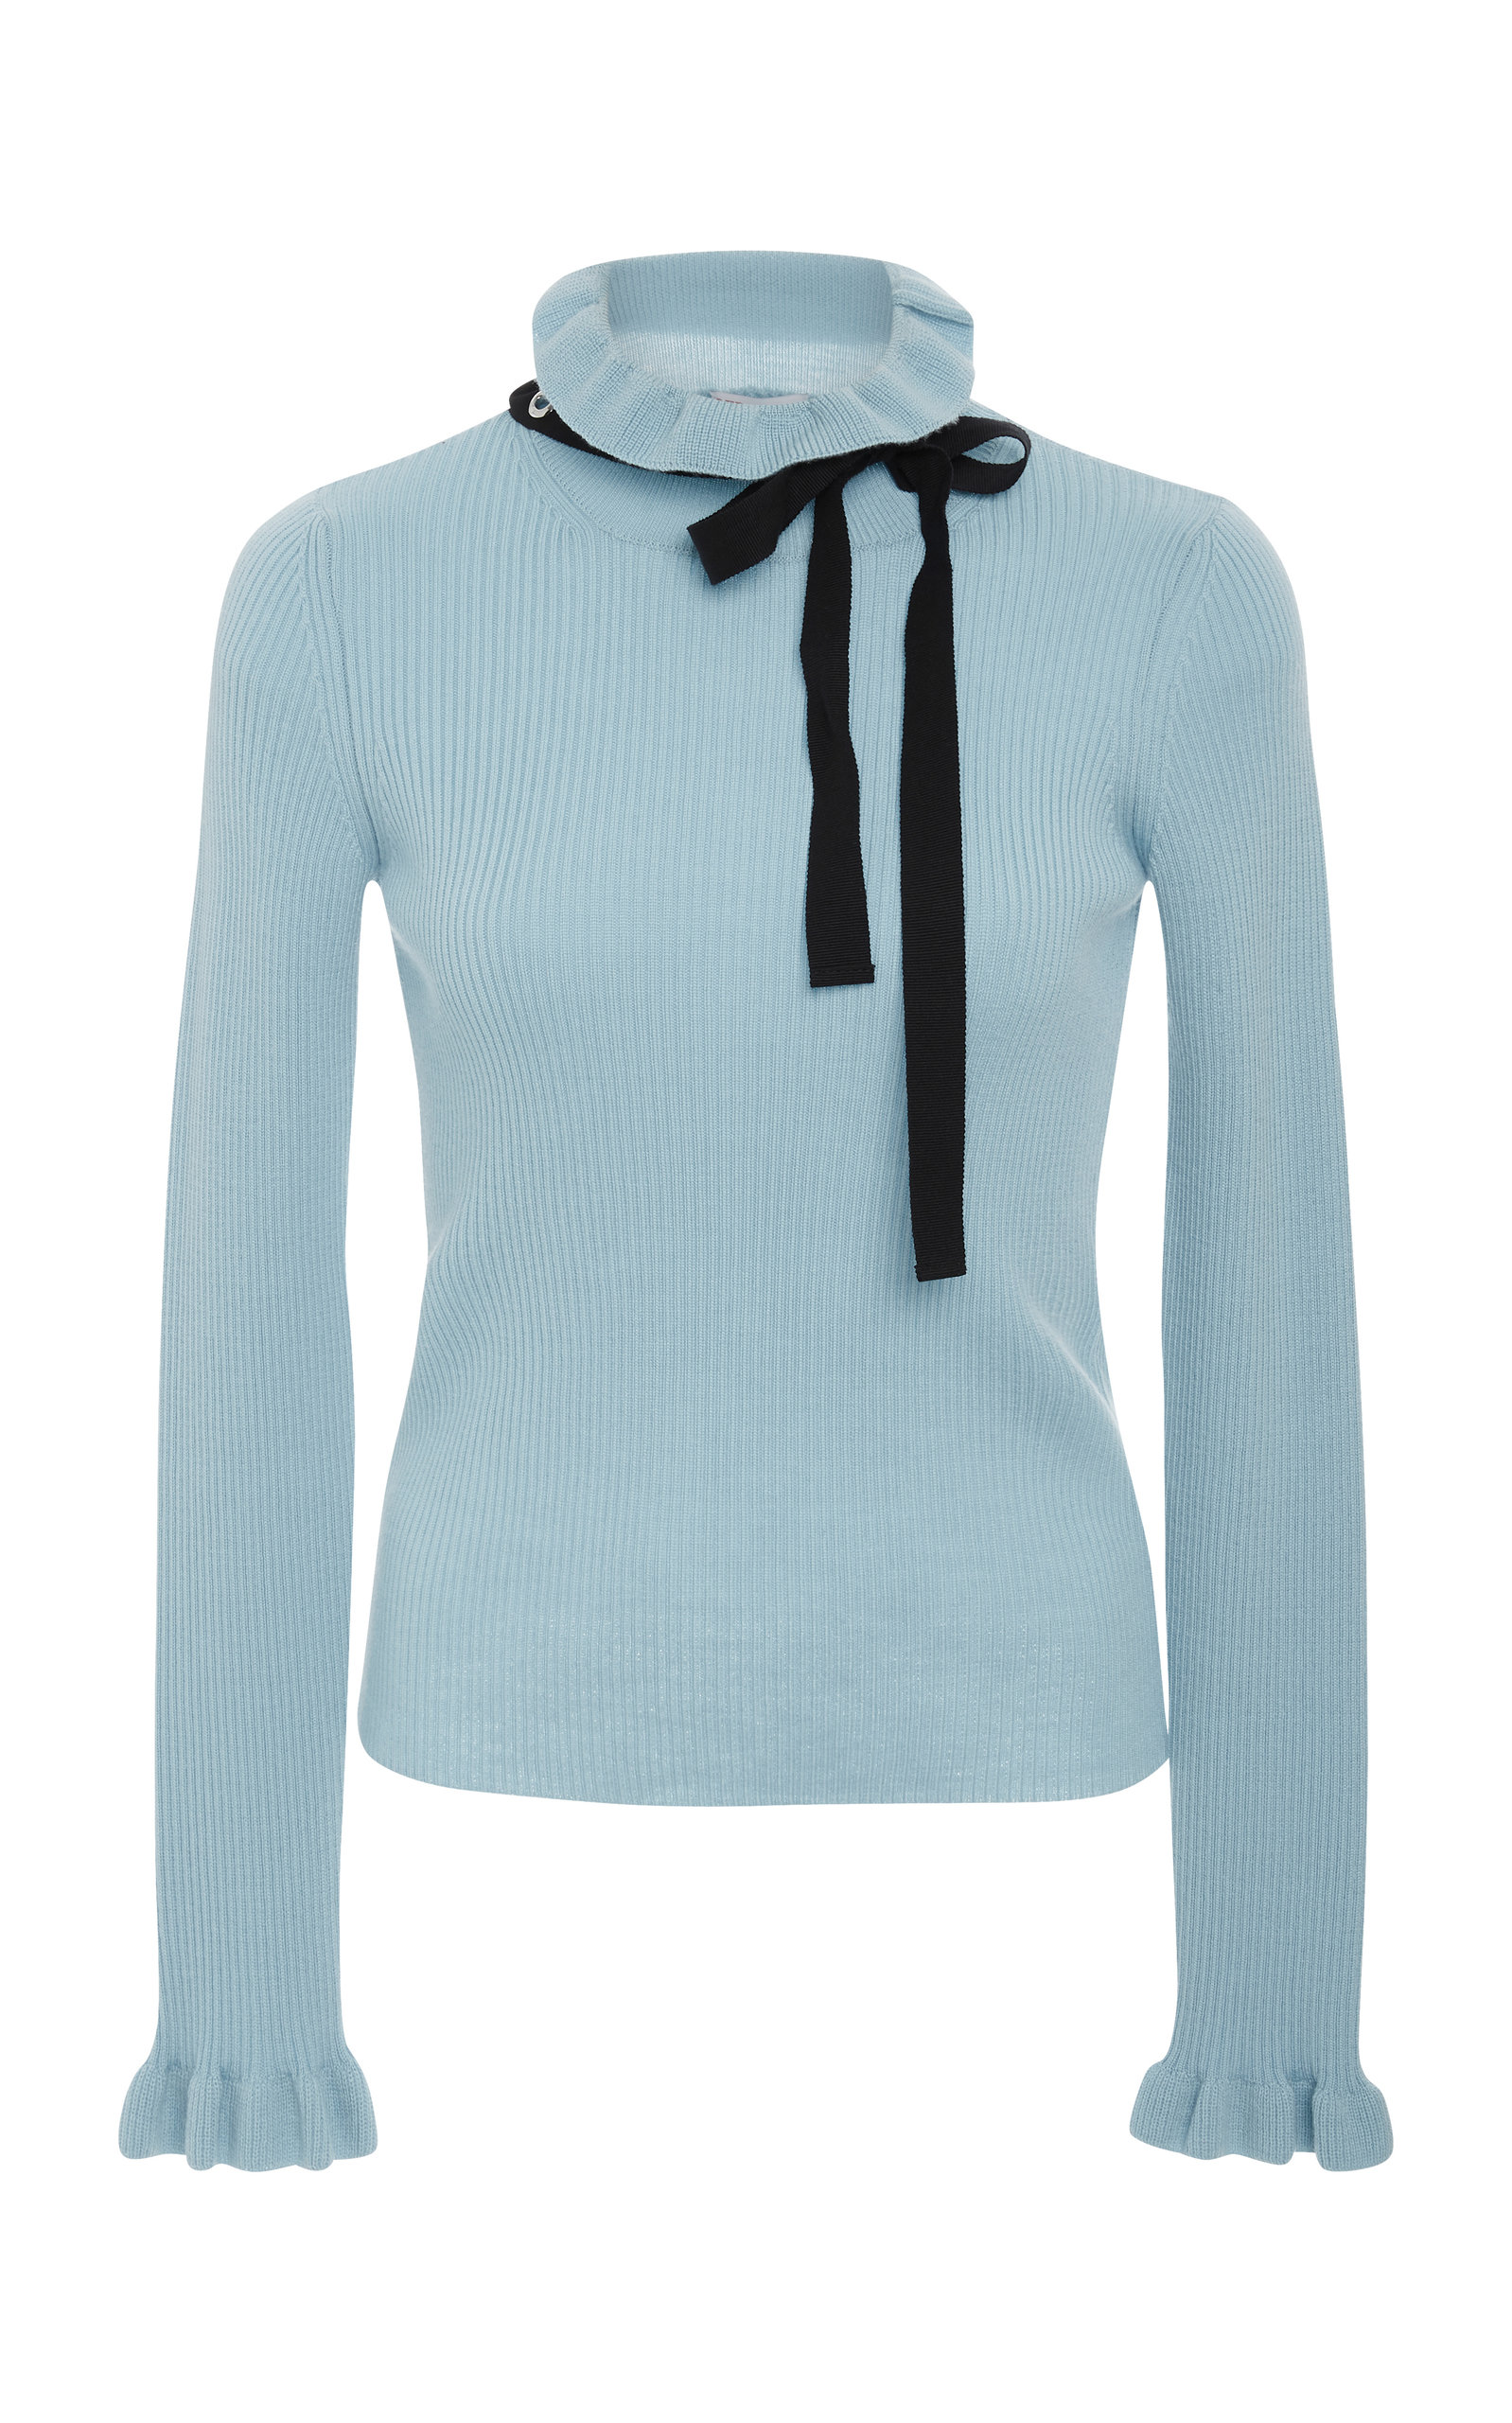 RED VALENTINO Grosgrain-Trimmed Wool Sweater, Blue